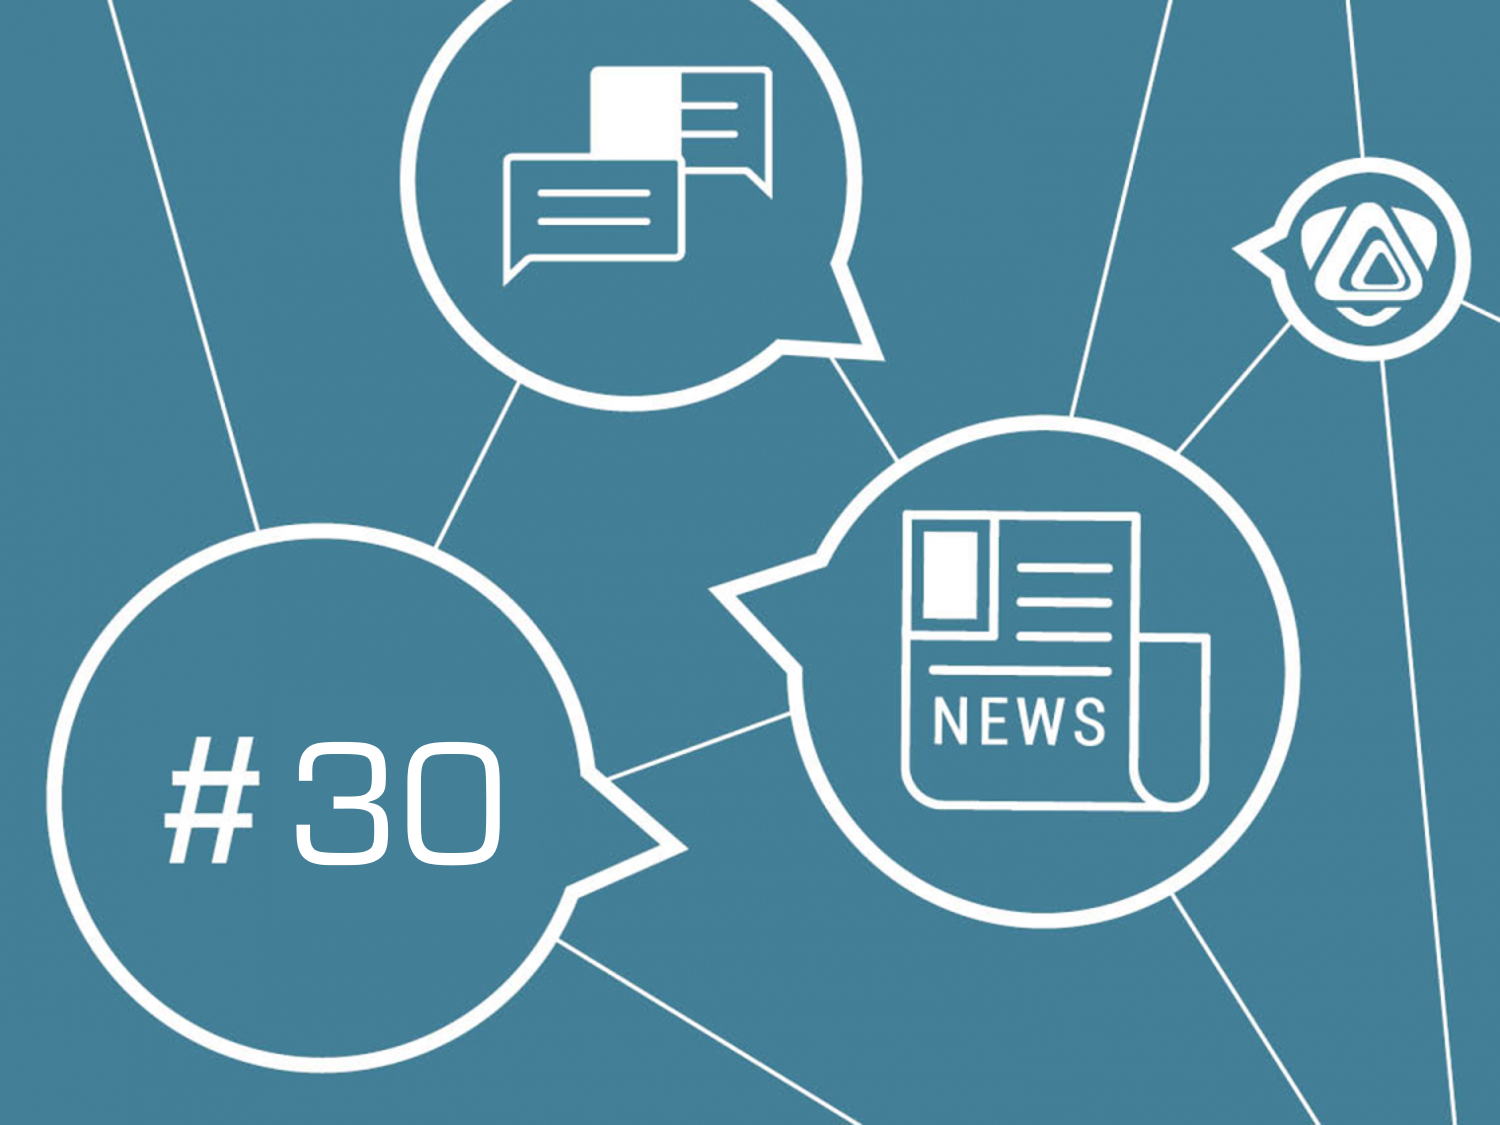 data science news weekly #30